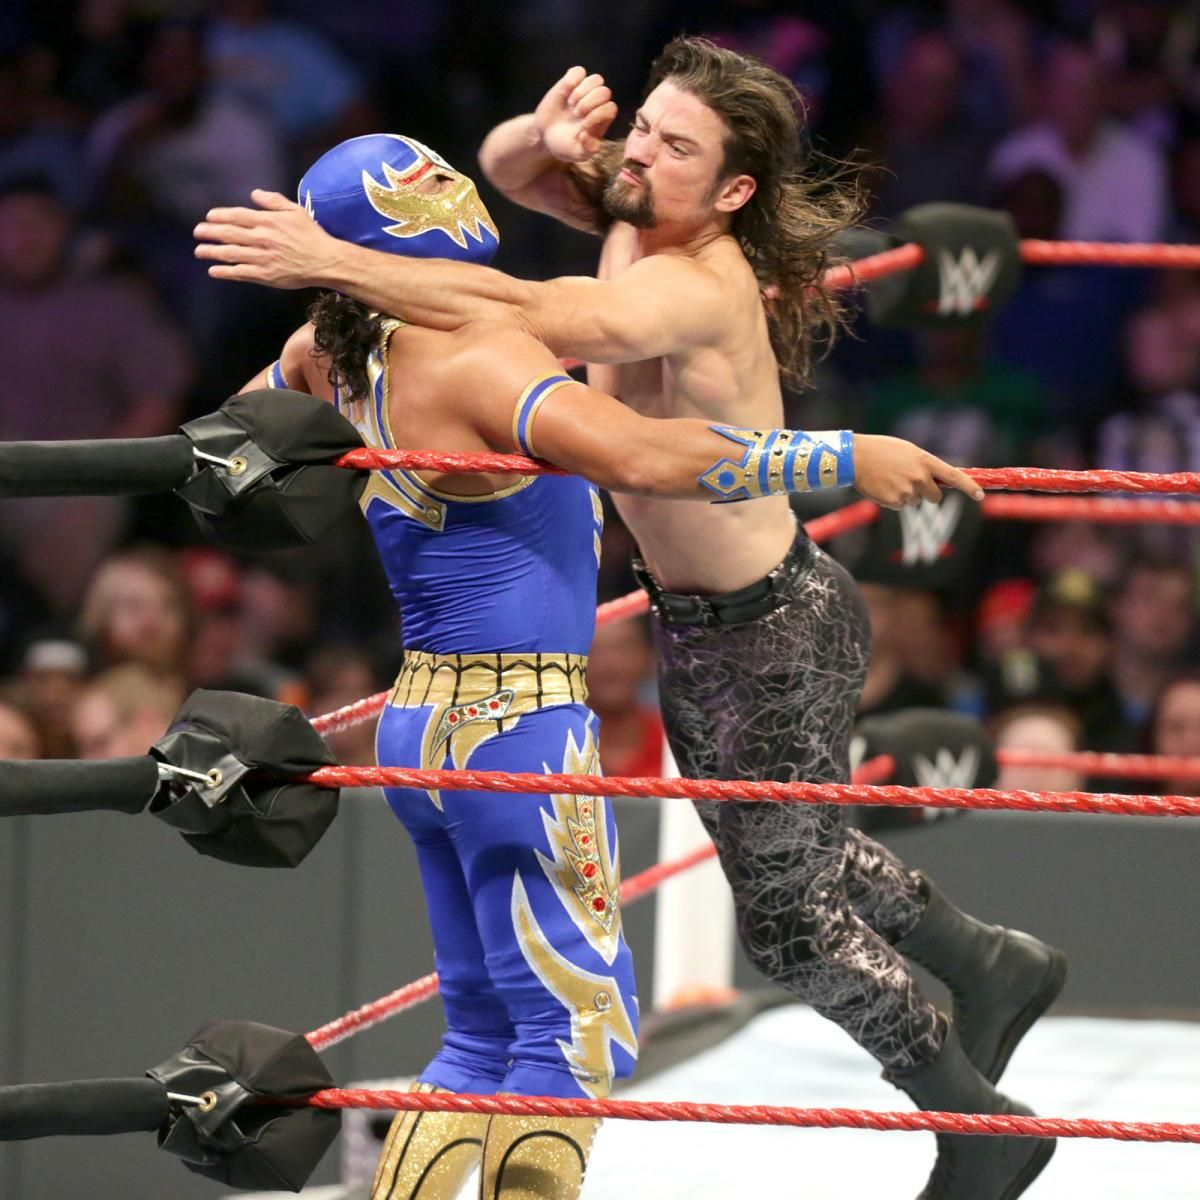 WWE News: TJ Perkins Clash Of Champions plans expected to